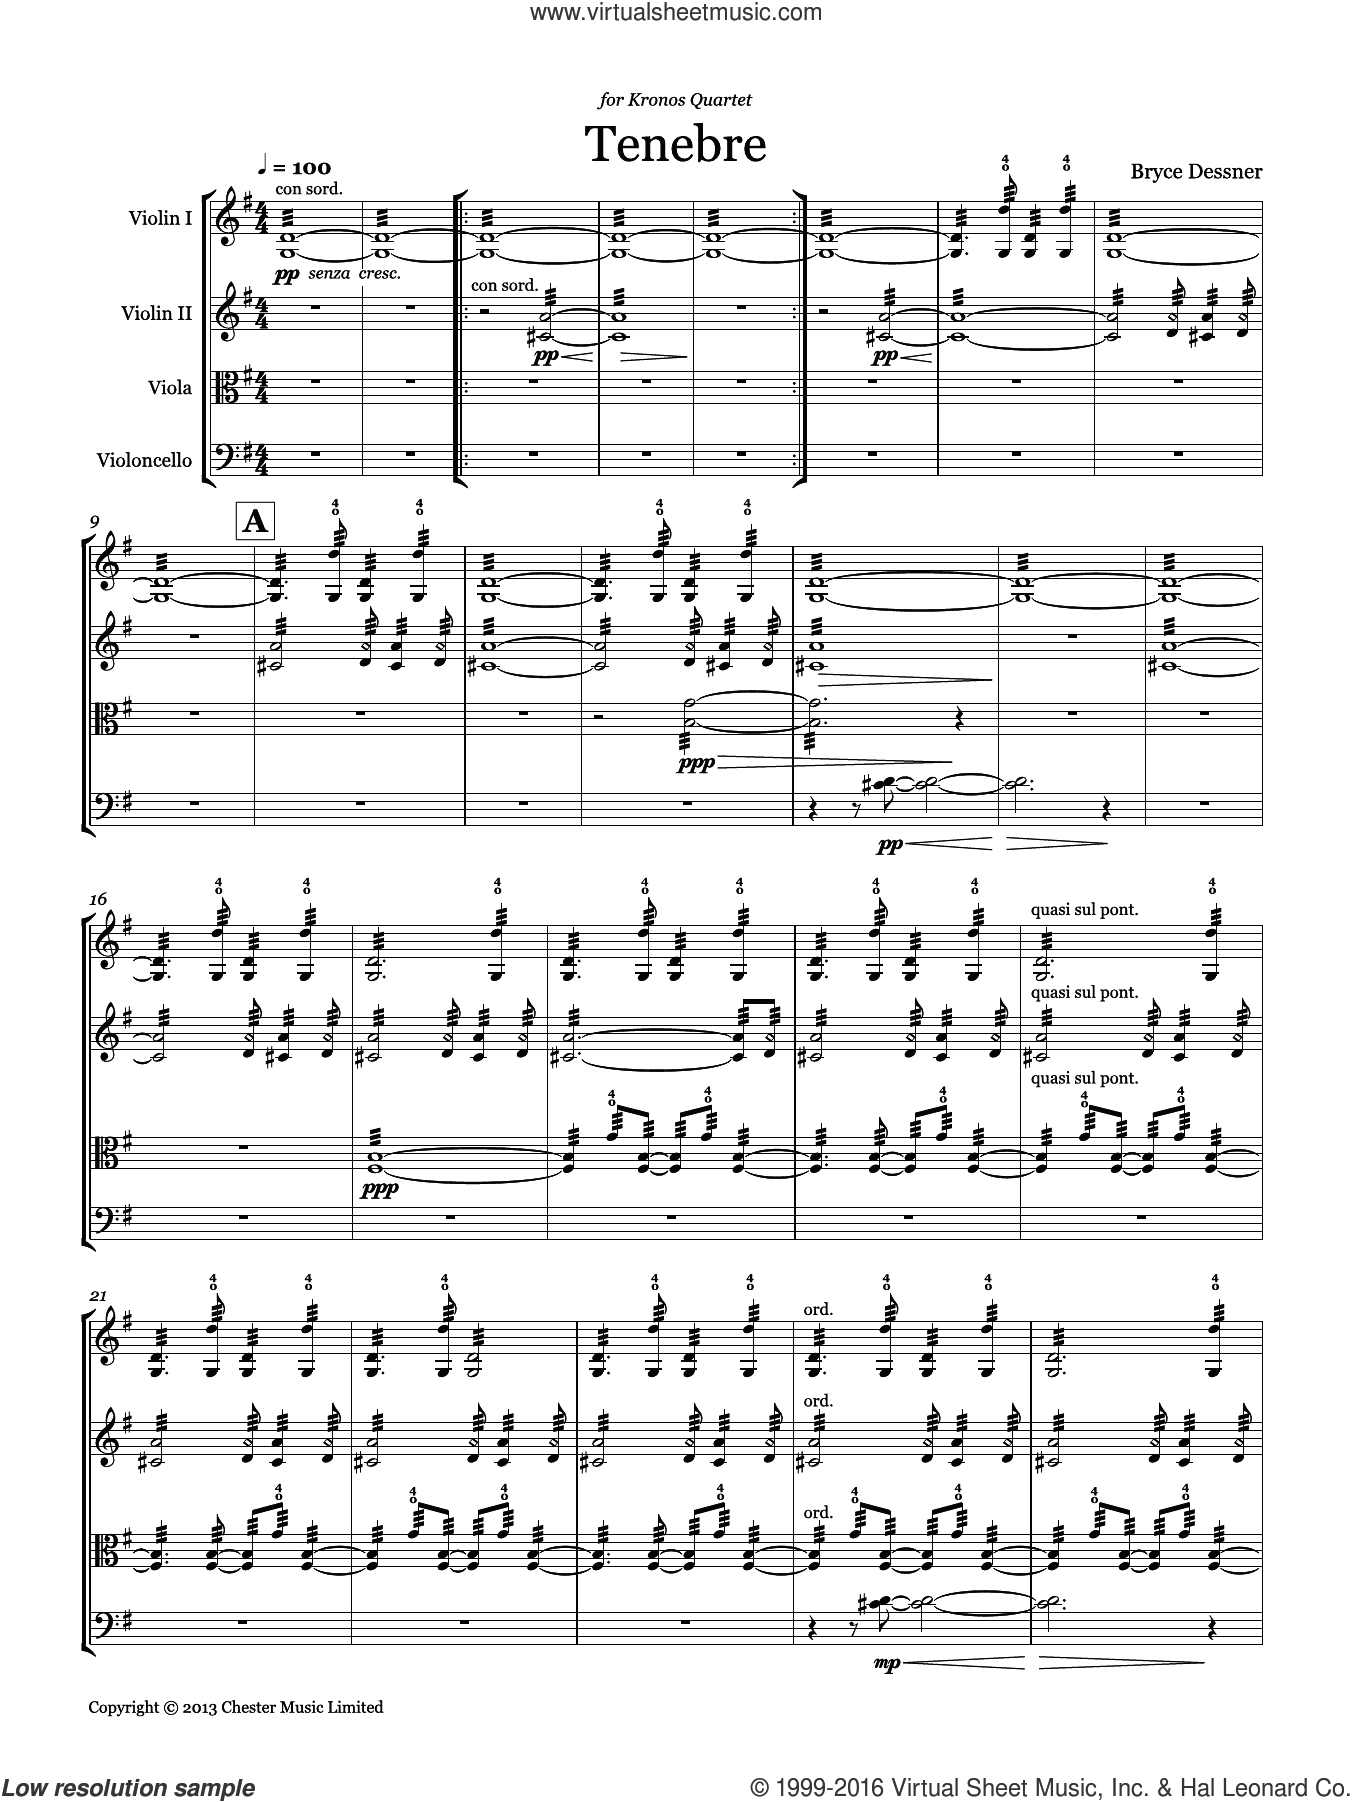 Tenebre (String quartet score and parts) sheet music for string orchestra by Bryce Dessner, classical score, intermediate skill level